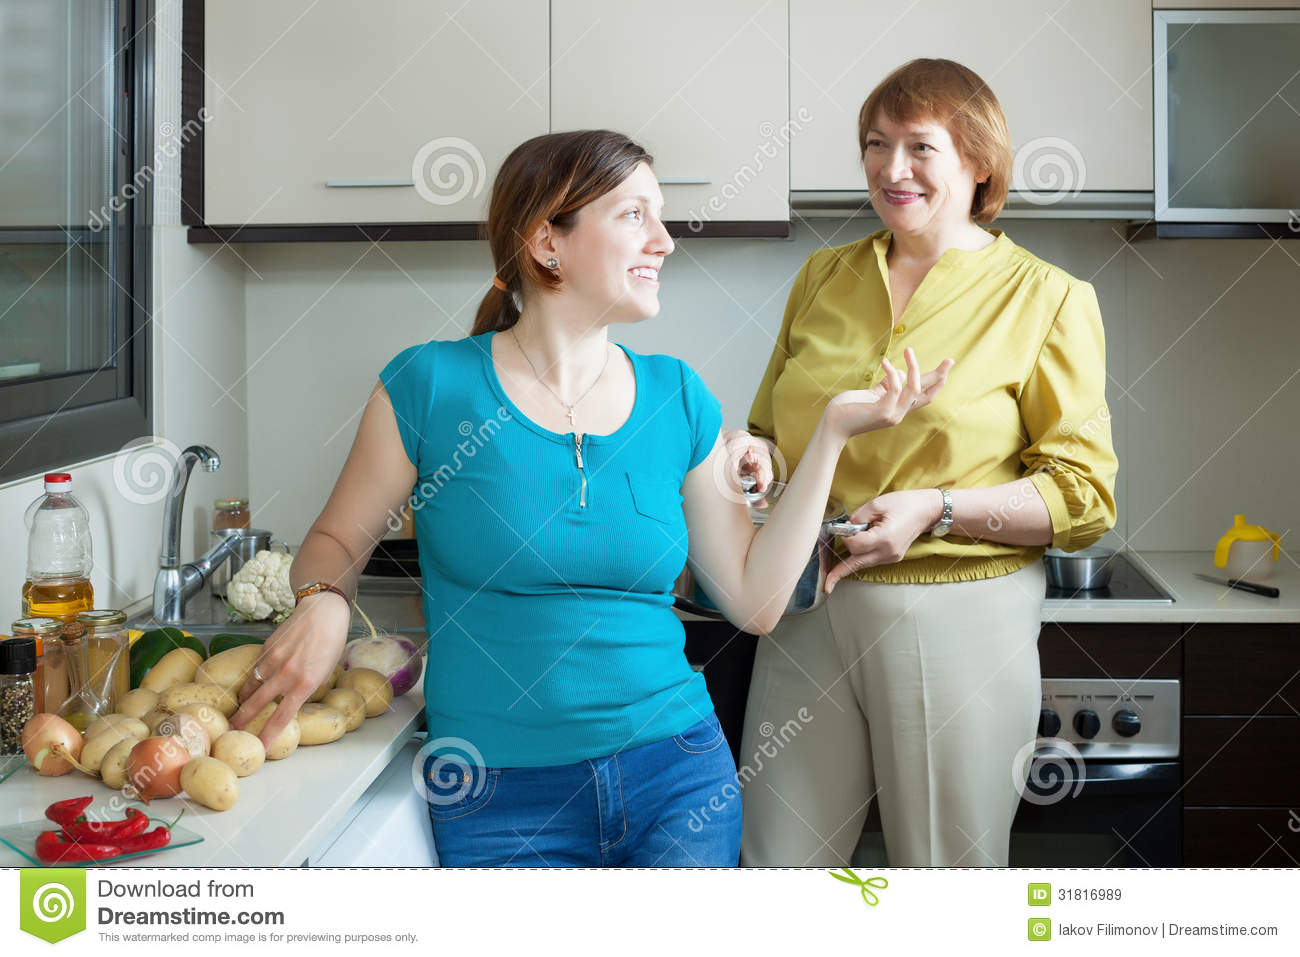 Adult Women Together Cooking In Home Stock Image - Image of interior ...